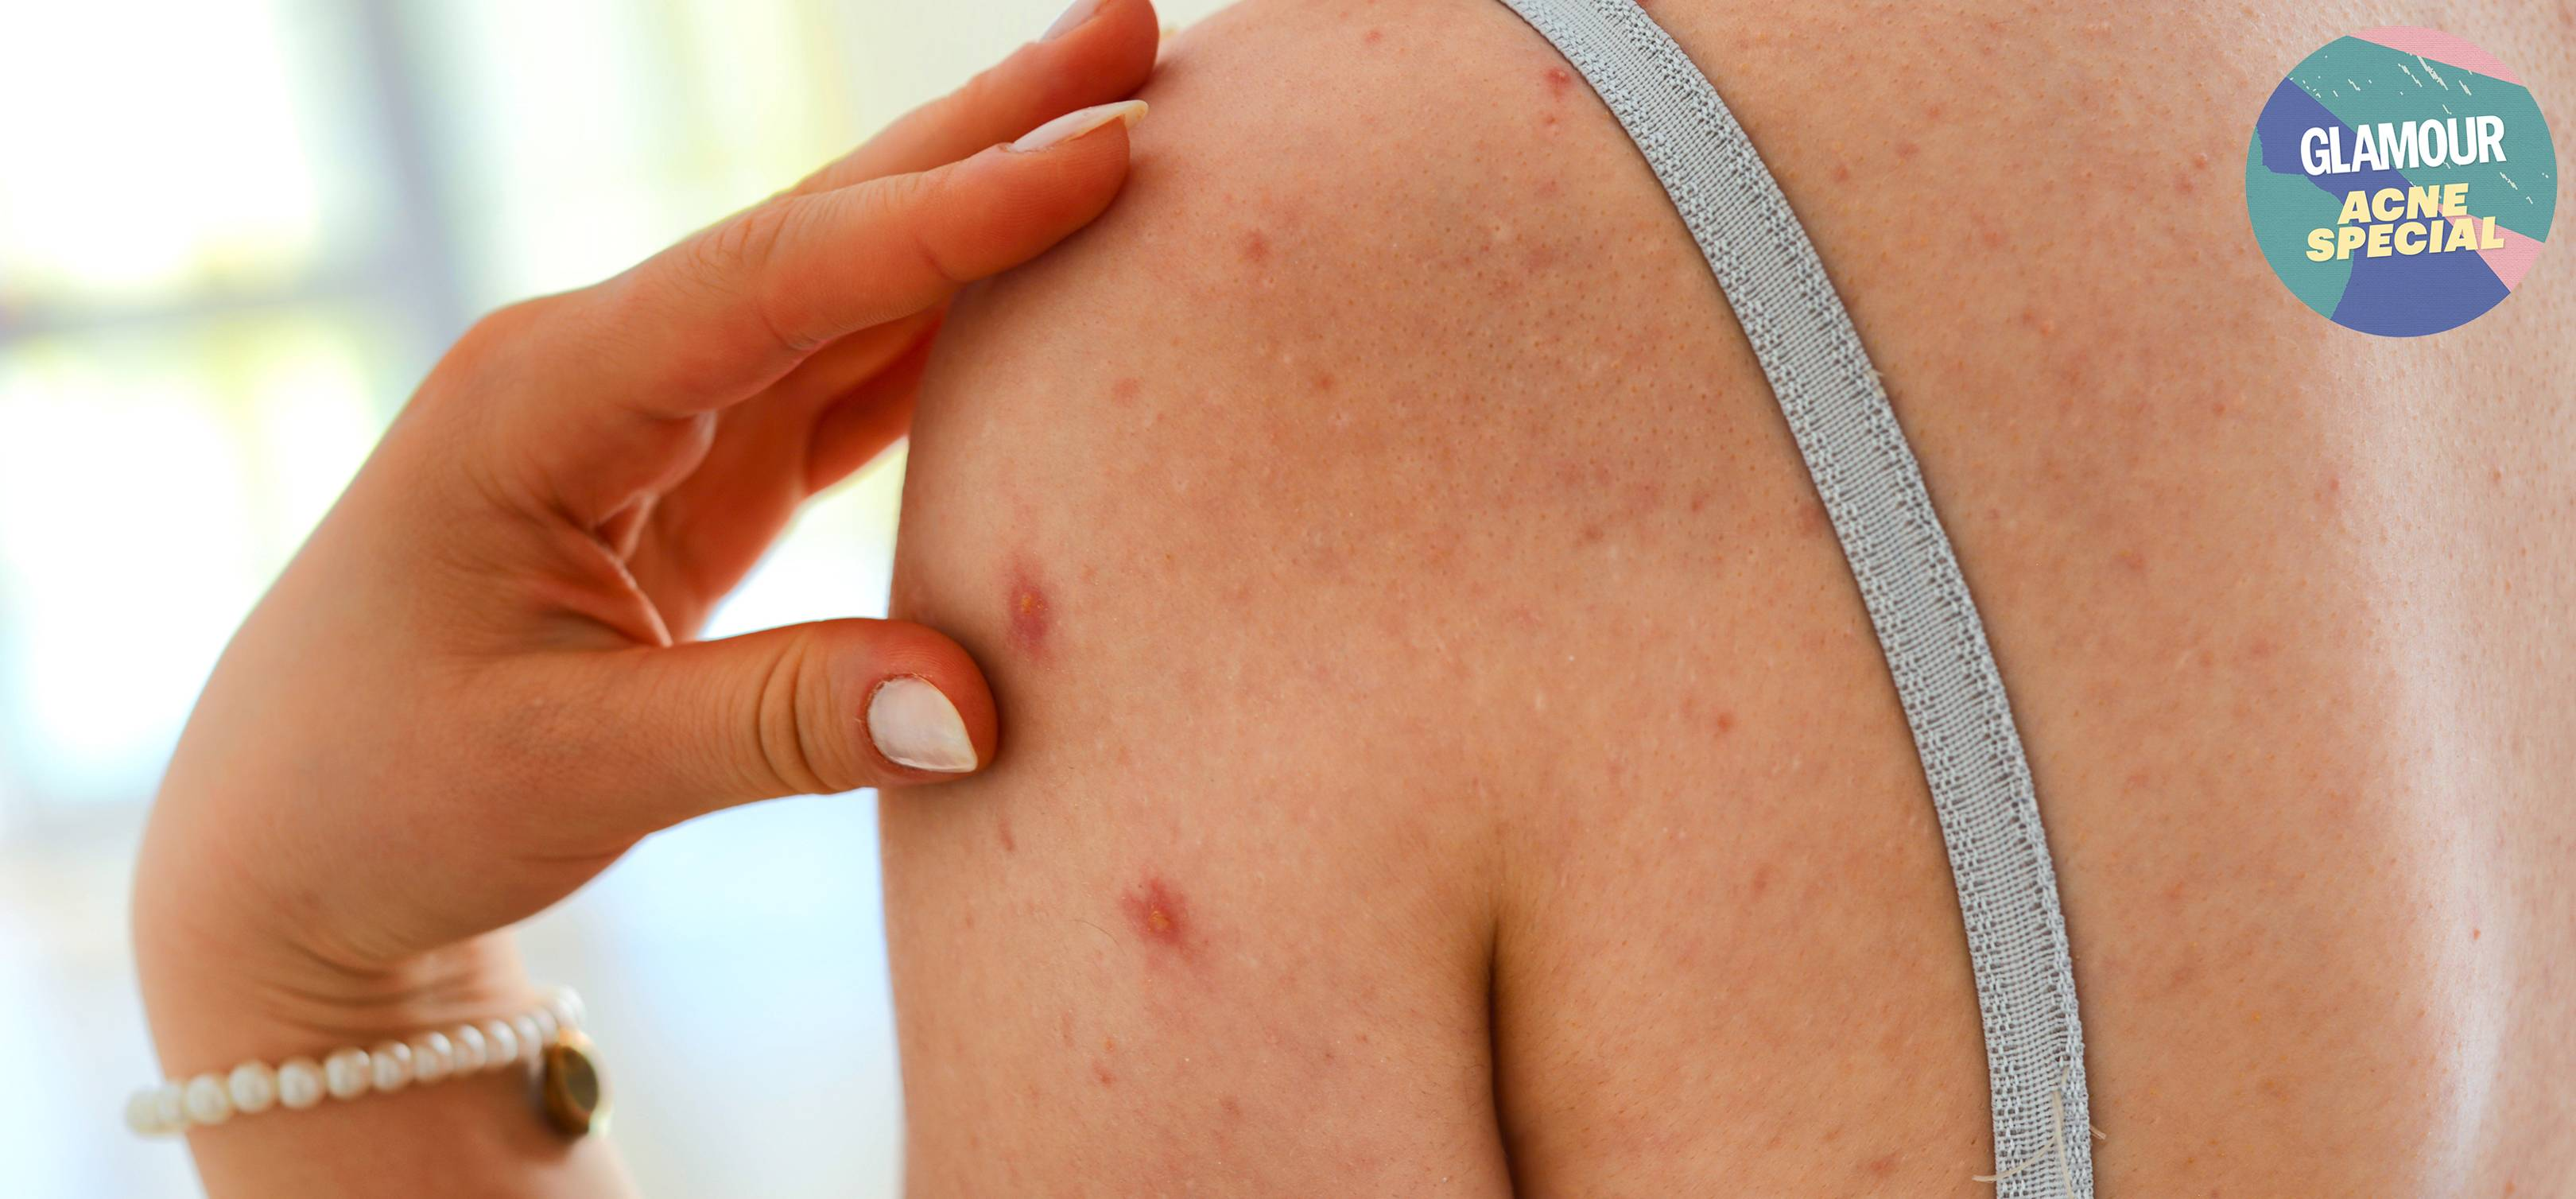 Fungal Acne Treatment And How To Tell If You Have It Glamour Uk